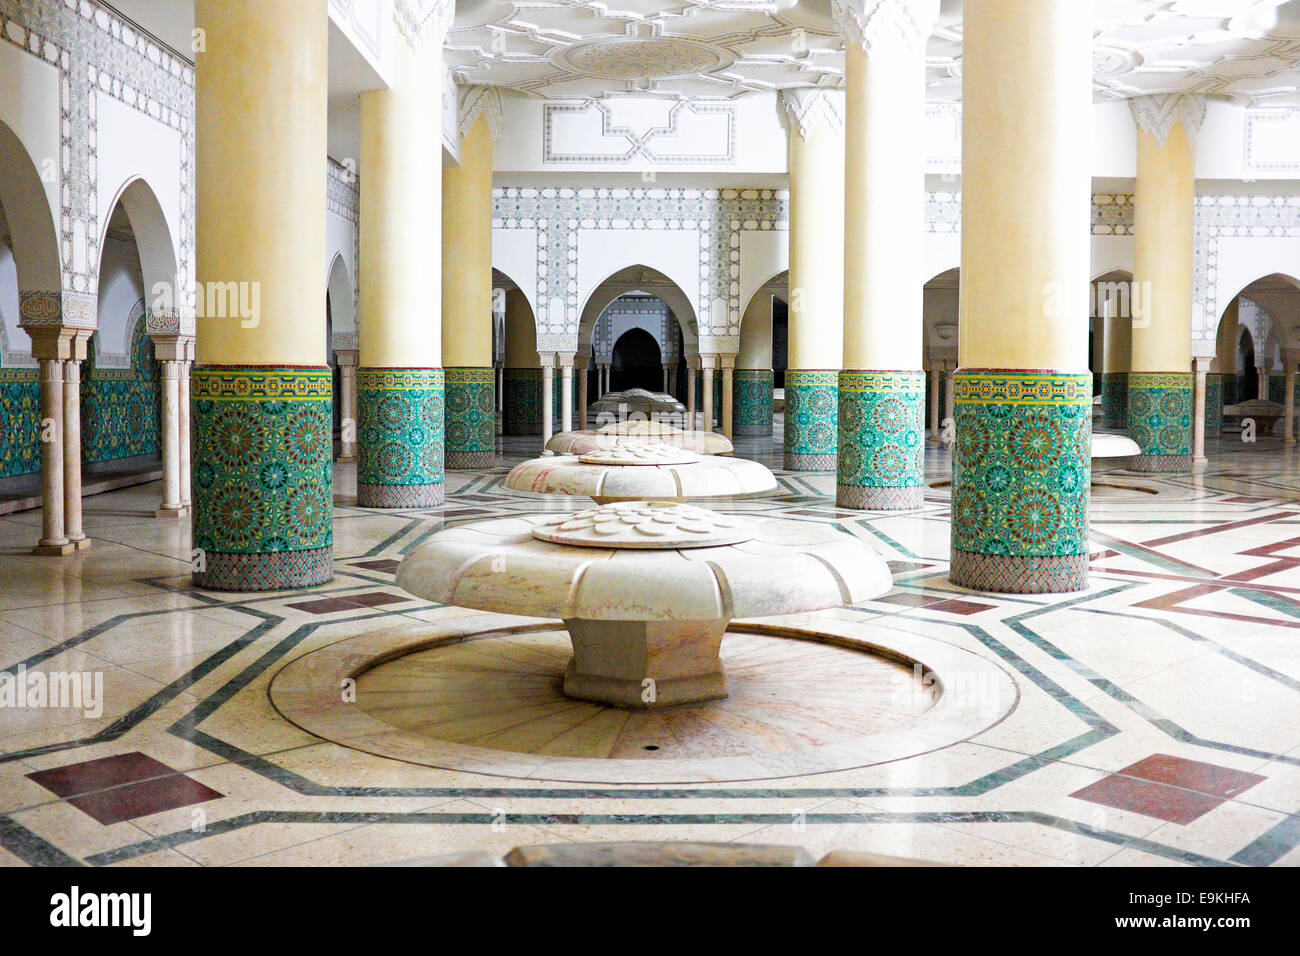 Nice Interior Arches And Mosaic Tile Work Of Hammam Turkish Bath In Hassan II  Mosque In Casablanca, Morocco.